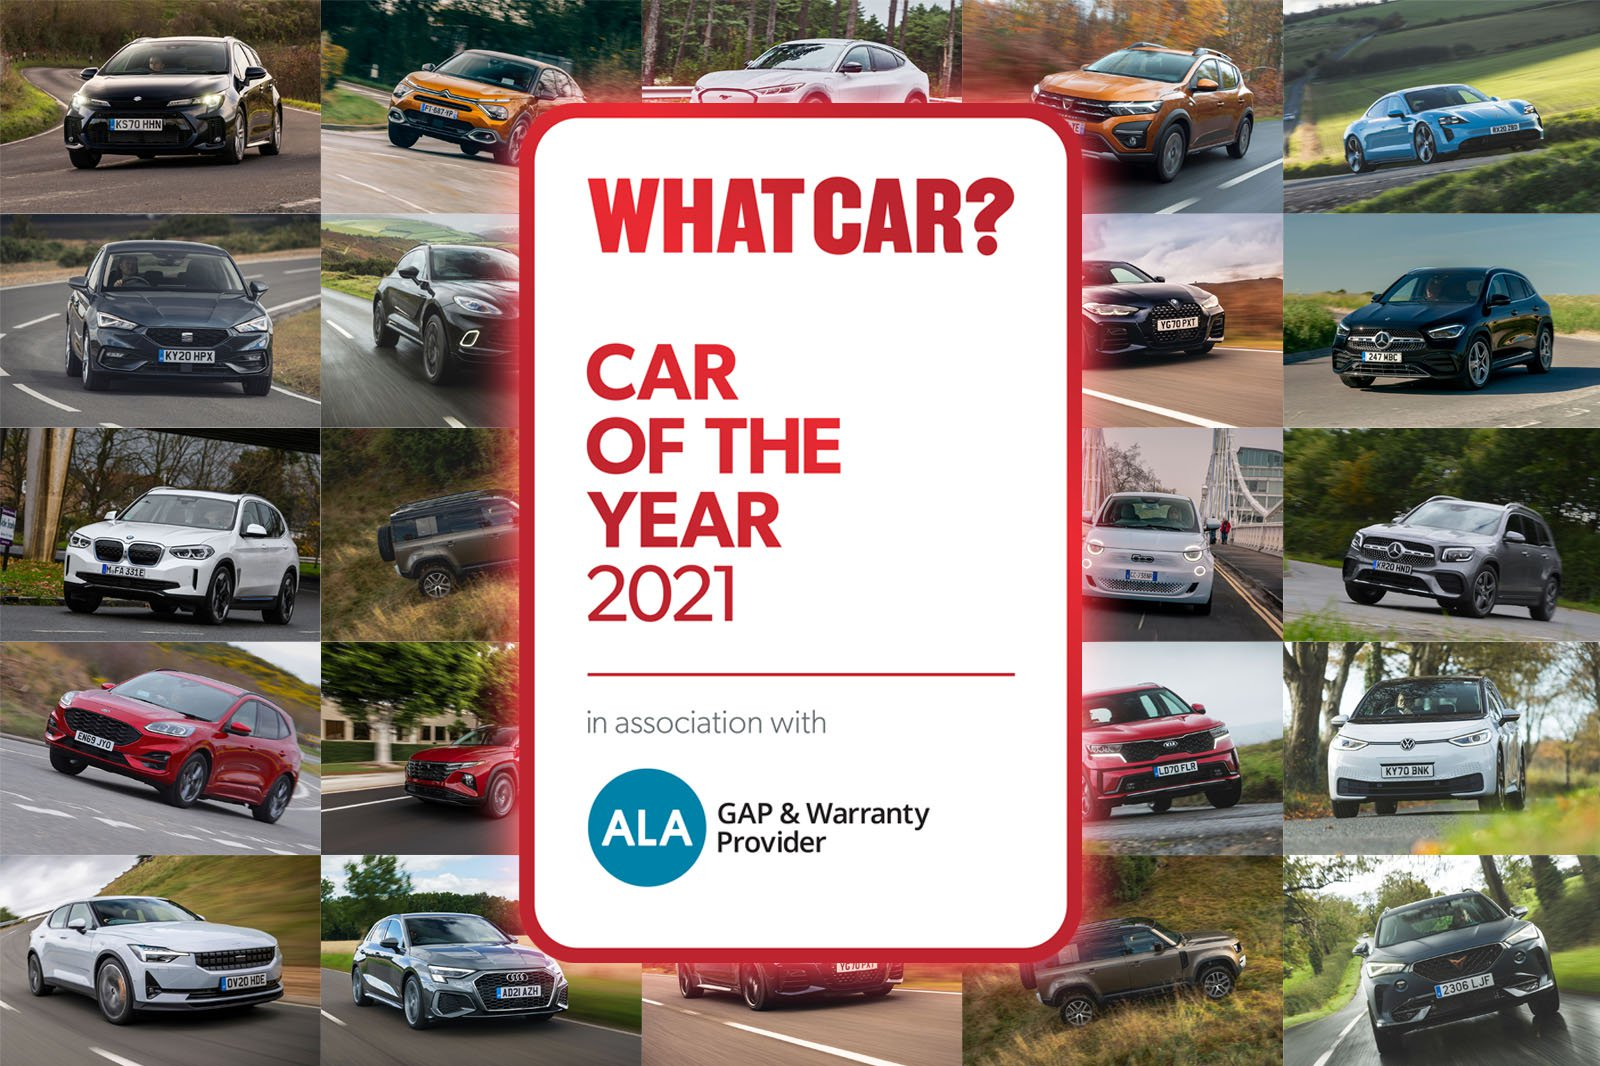 What Car? Car of the Year 2021 shortlist